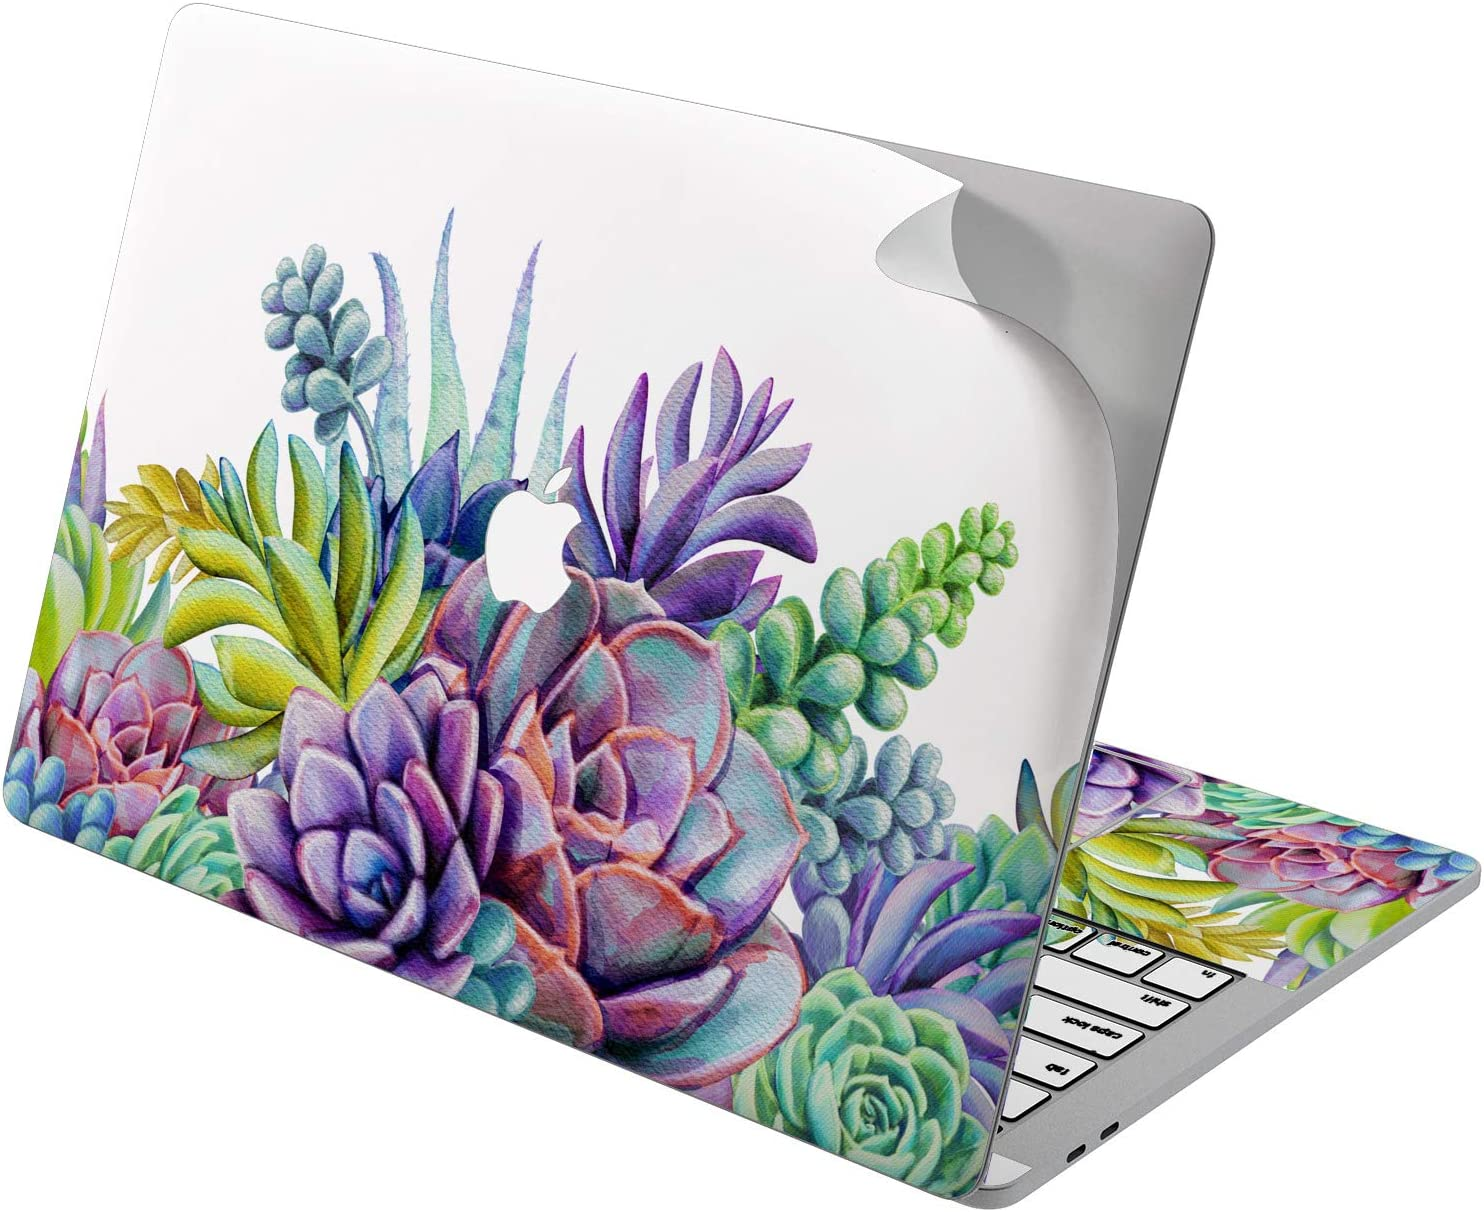 "Cavka Vinyl Decal Skin for Apple MacBook Pro 13"" 2019 15"" 2018 Air 13"" 2020 Retina 2015 Mac 11"" Mac 12"" Design Purple Plant Flower Succulent Sticker Protective Leaves Print Cover Laptop Cacti Rainbow"